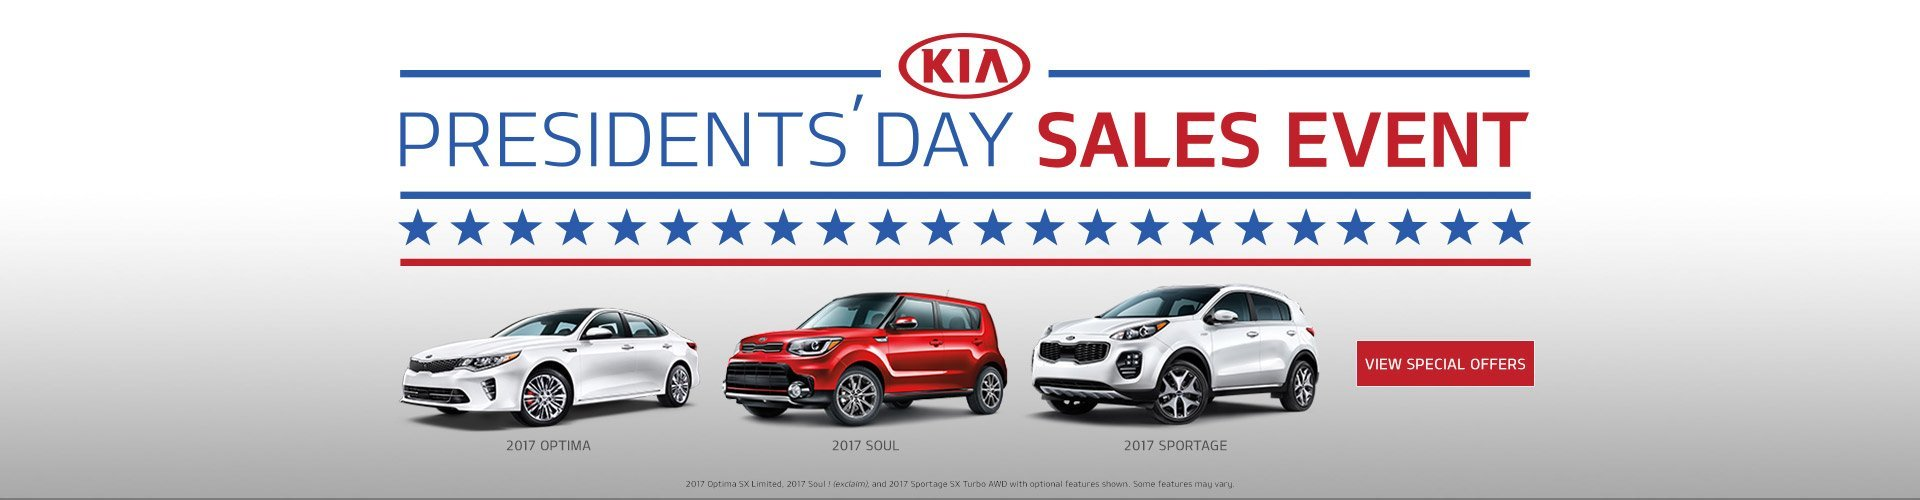 kia presidents day sale